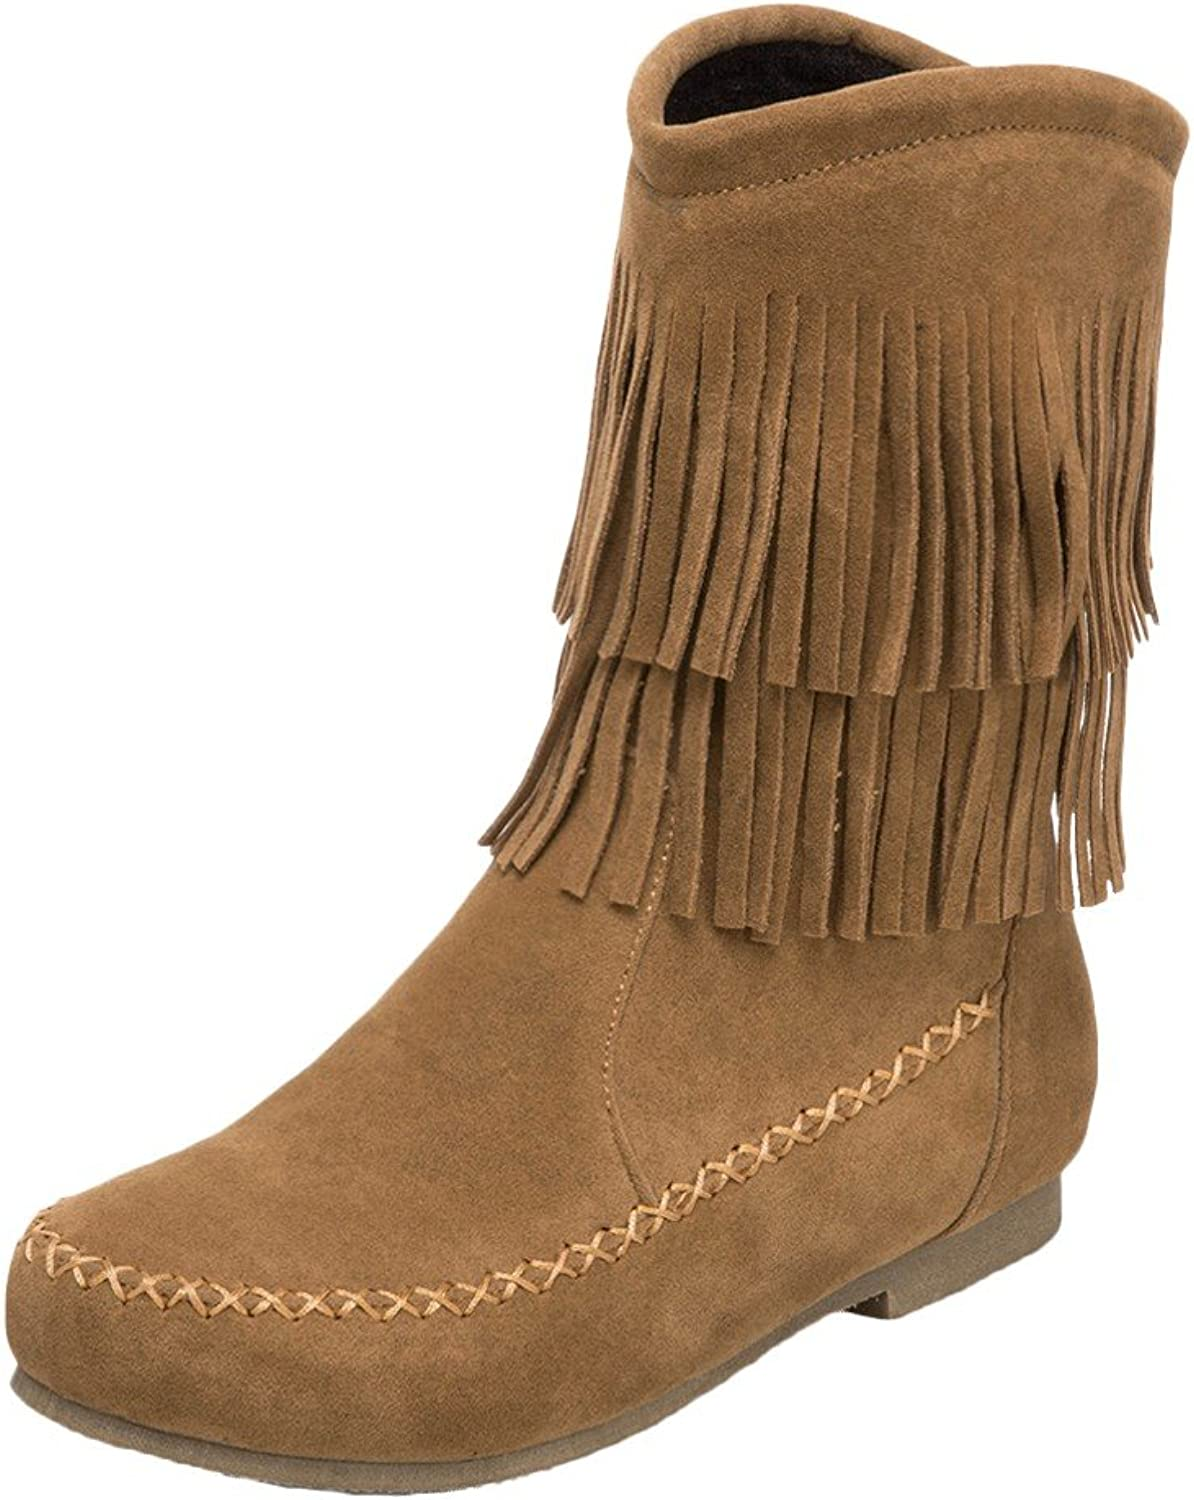 Charm Foot Women's Round Toe Low Heel Tassels Snow Boots